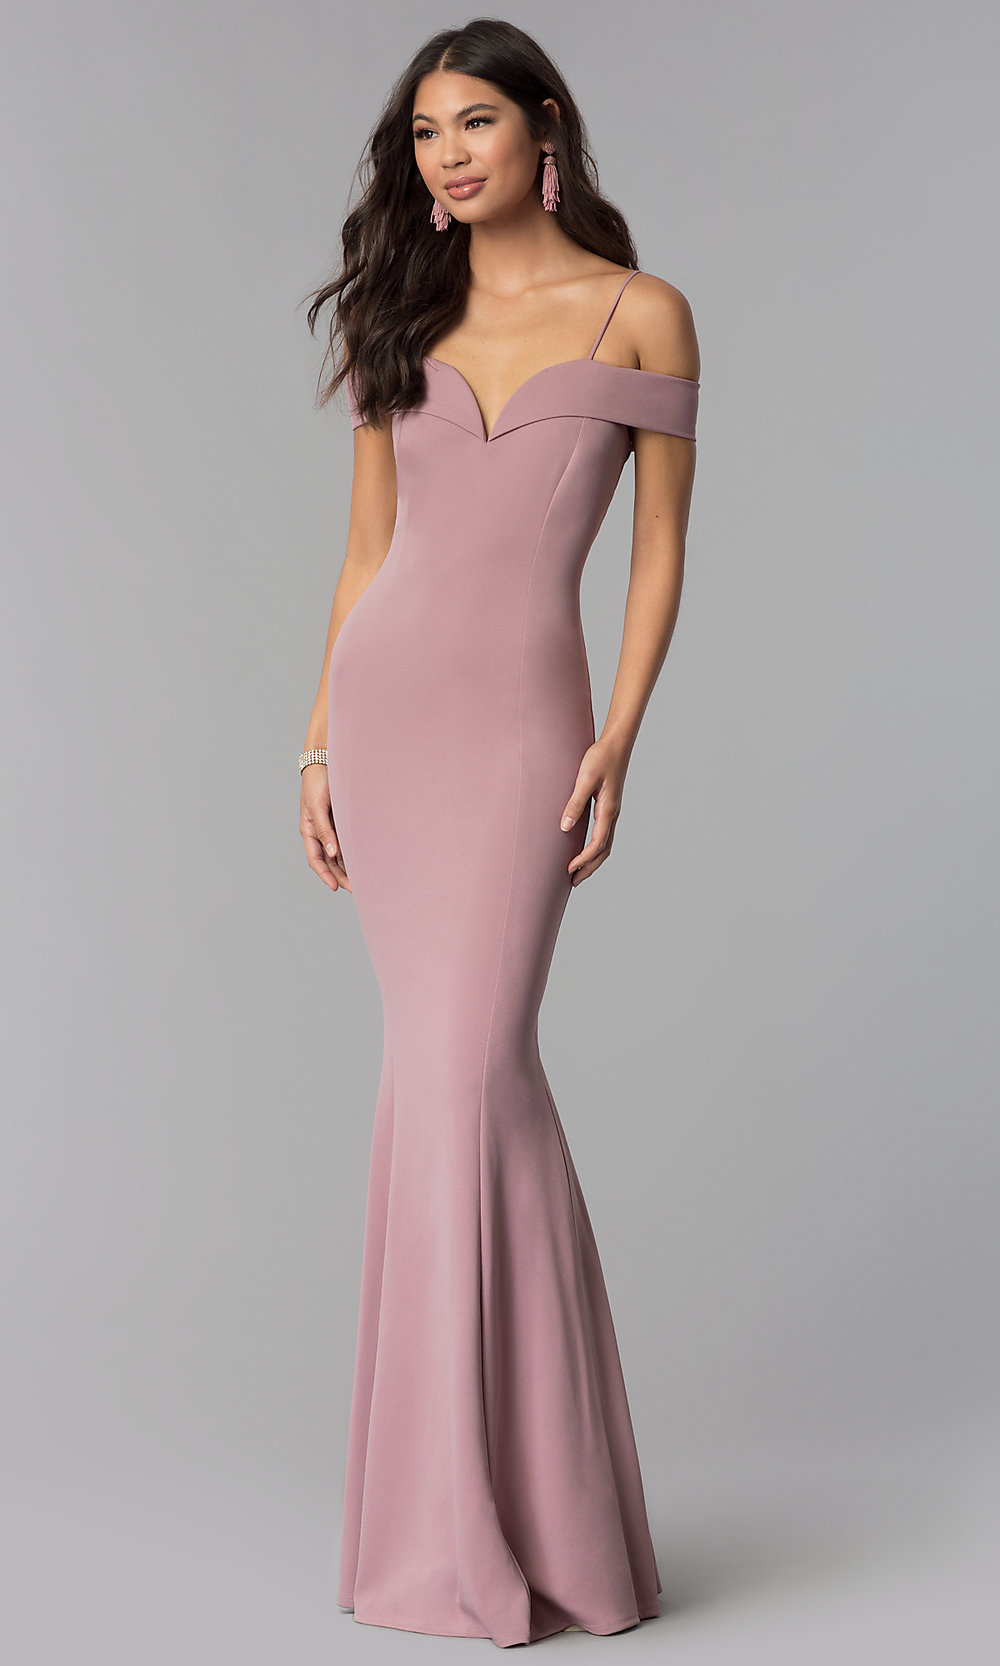 Long Formal Dress with OfftheShoulder Straps